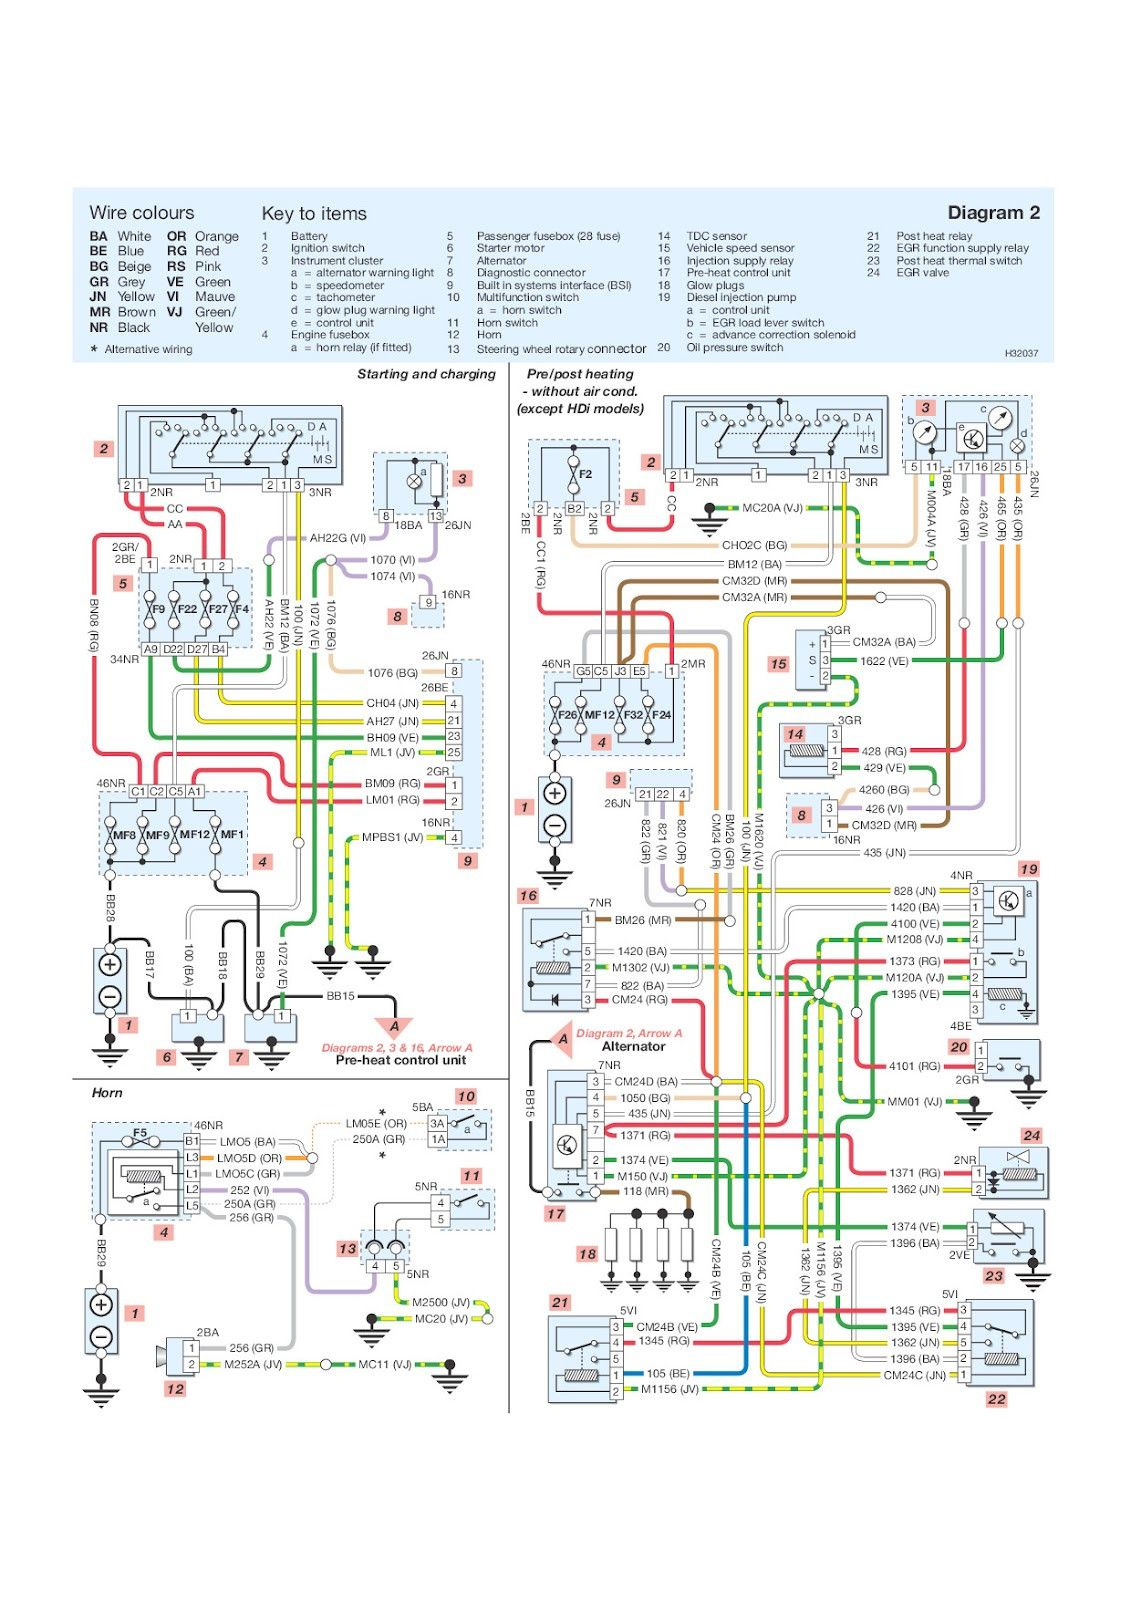 your wiring diagrams source peugeot 206 starting charging horn rh pinterest com